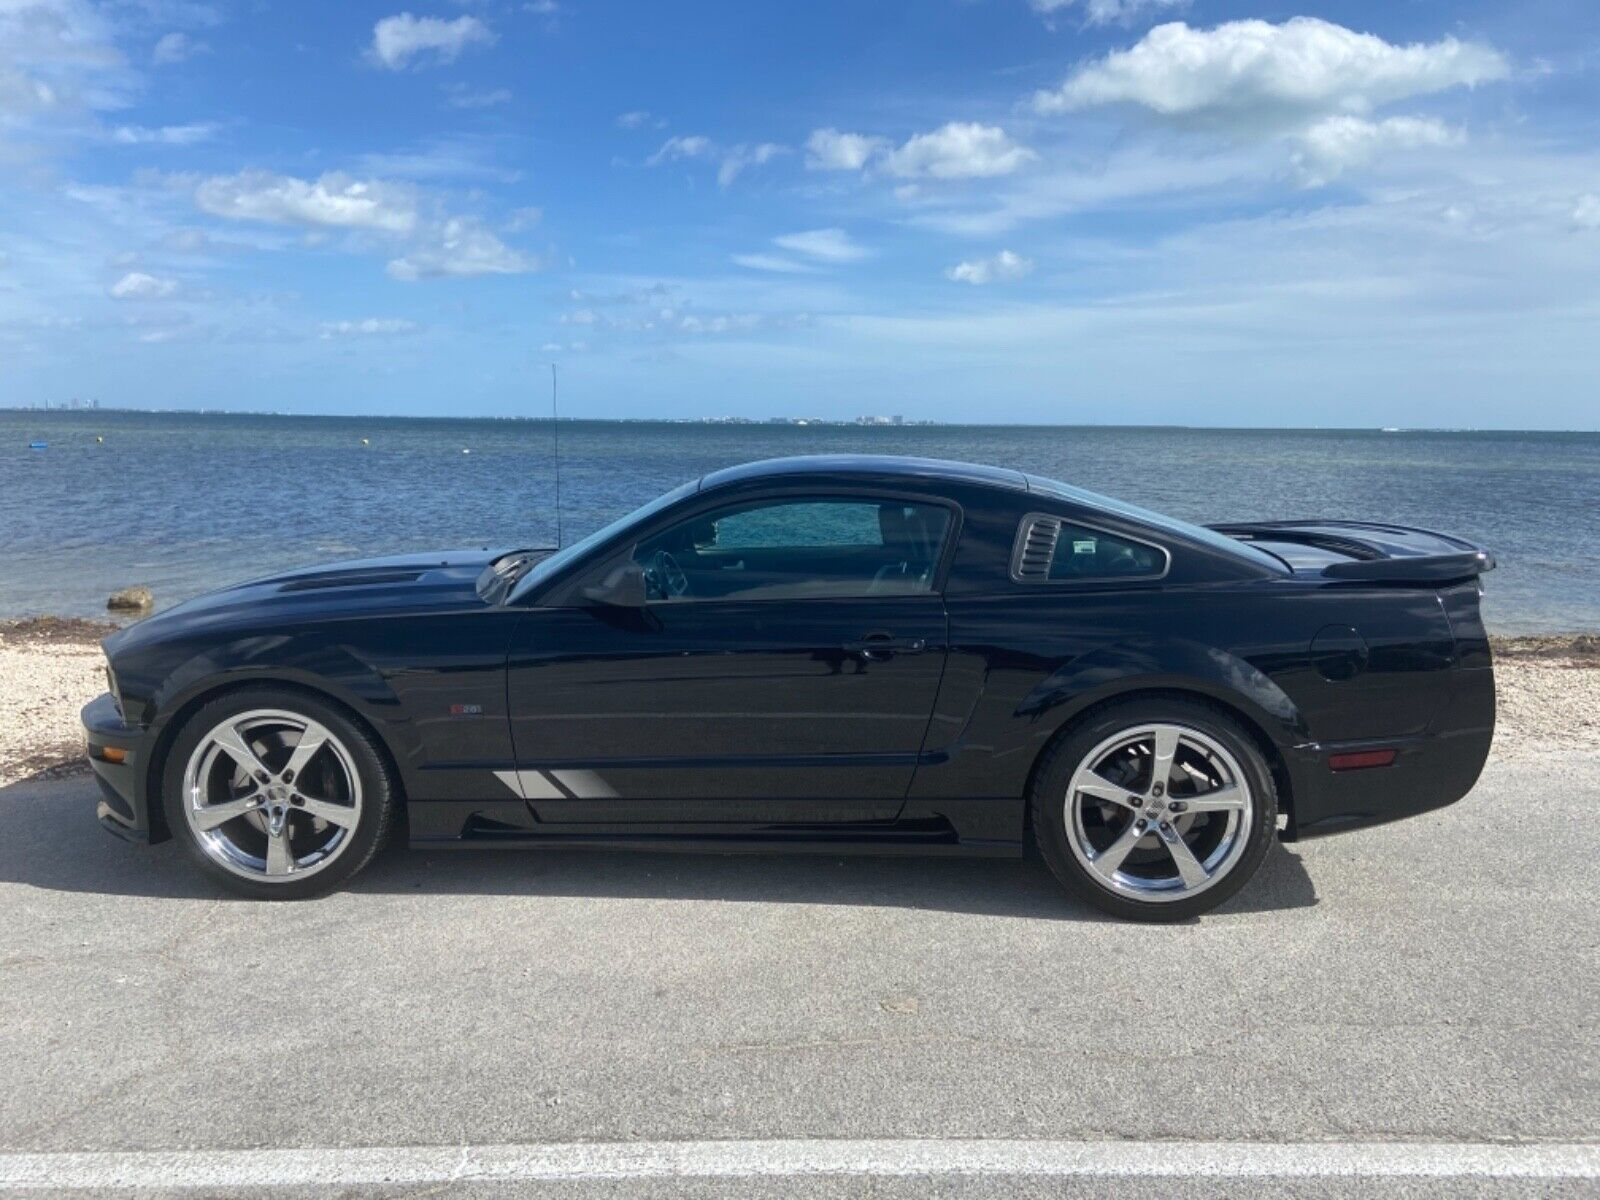 2007 Mustang Saleen 281 Supercharged 5 Speed - AWESOME CAR!